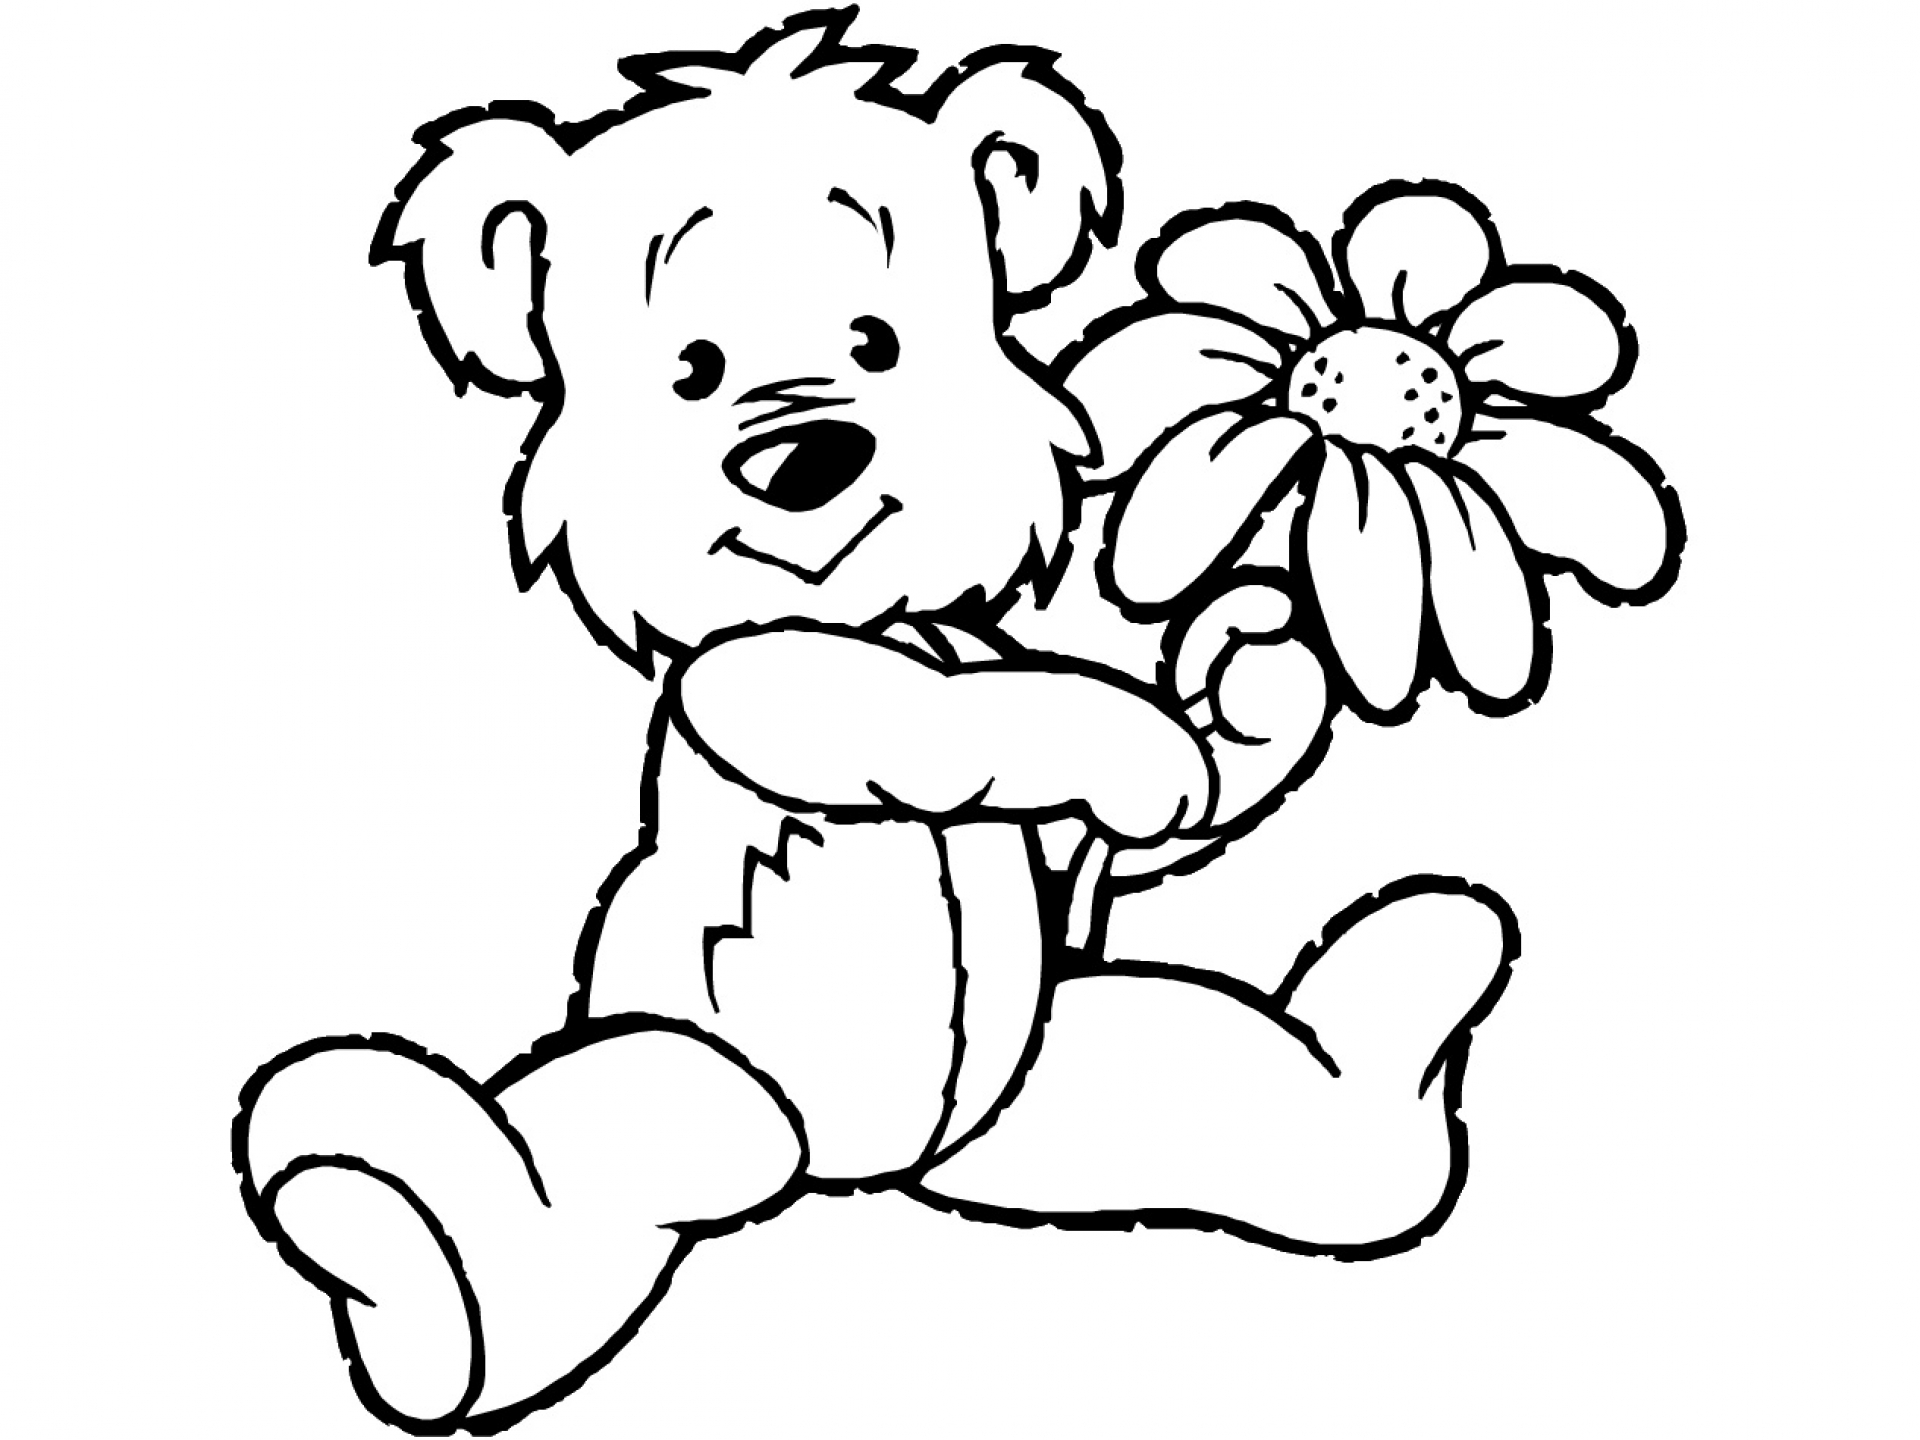 1920x1440 Value Cartoon Character Colouring Pages Colori